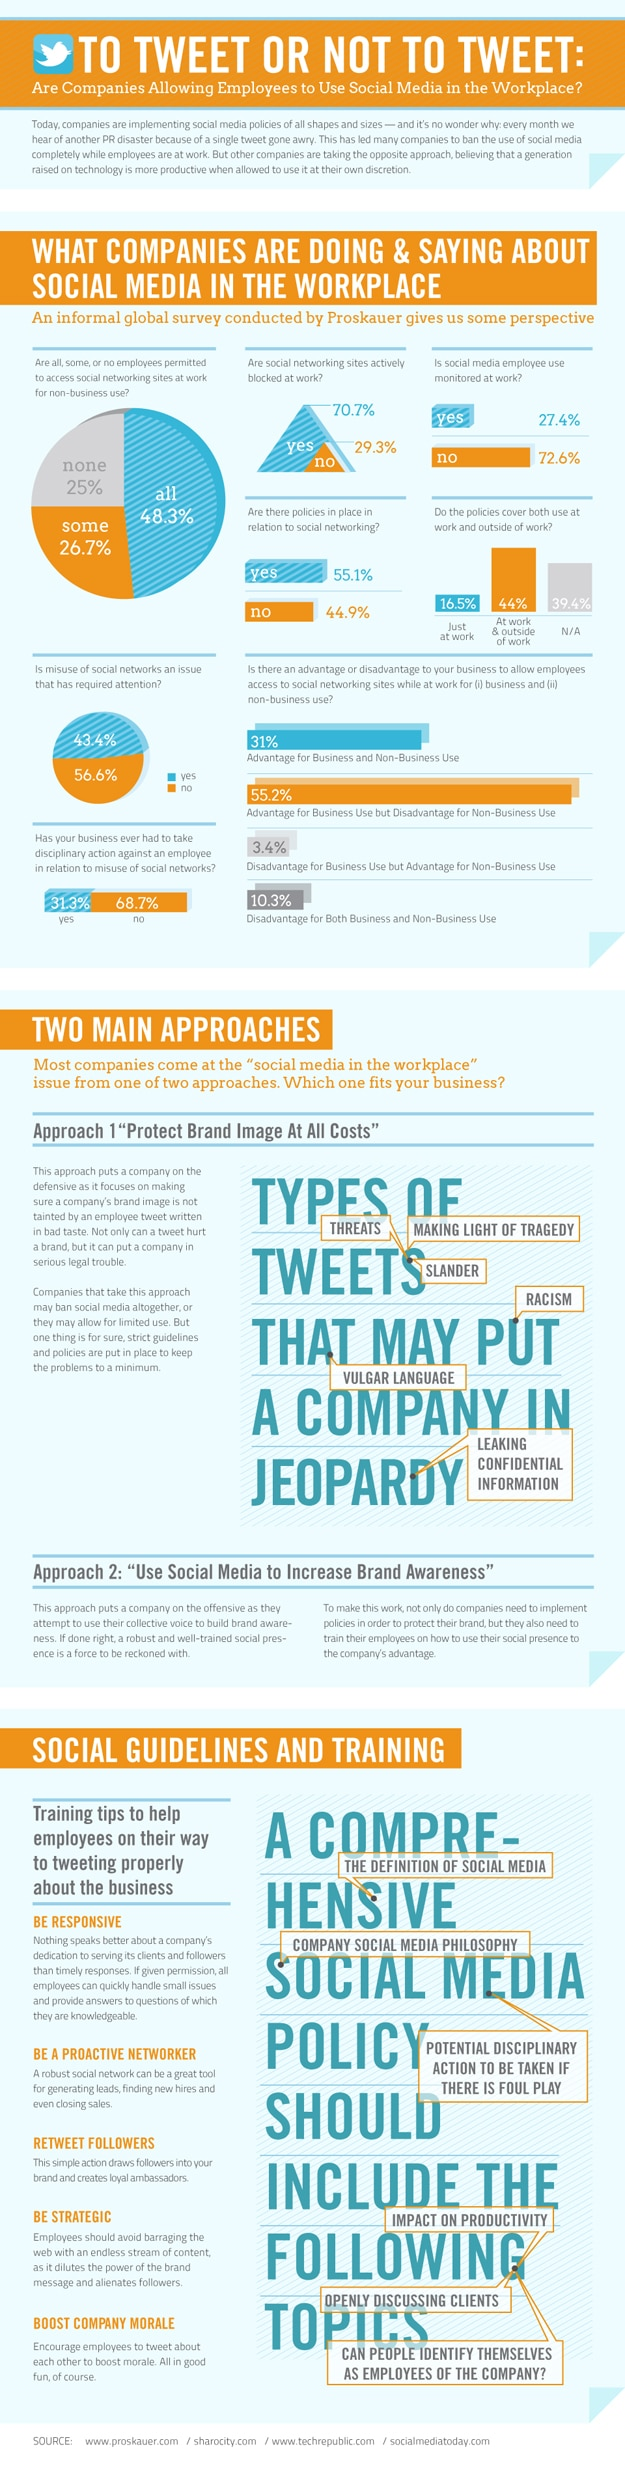 Employees Tweeting At Work: Two Different Opinions [Infographic]